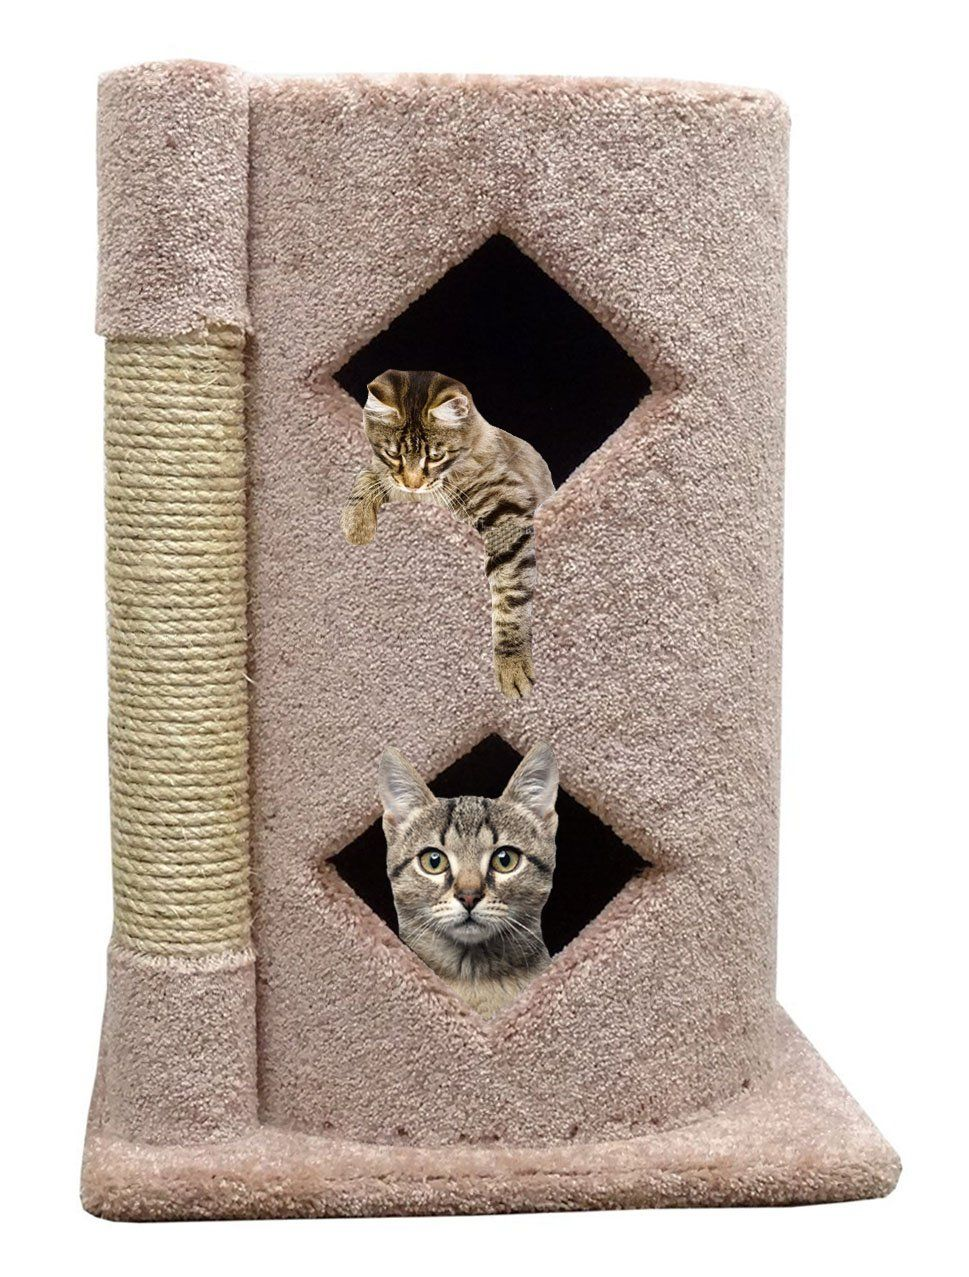 Carpet Cat Condo 2 Story Modern Kitty Condo With Scratching Post Beige Carpet Click On The Image For Additional Details Th Cat House Cat Condo Super Cat